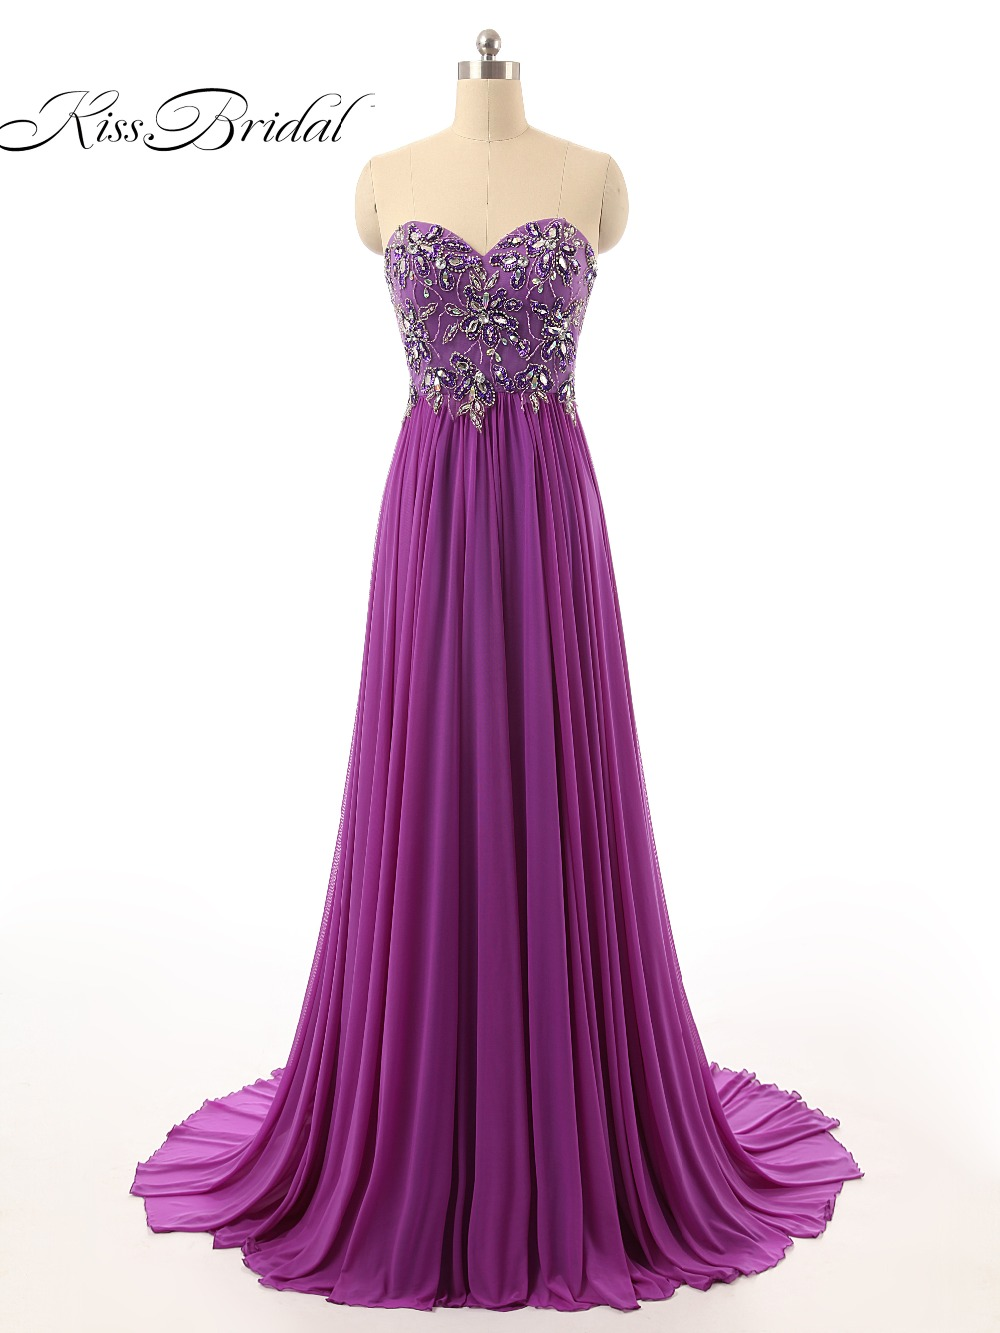 Fantastic New Style 2017   Prom     Dress   Sweetheart Neck Off the Shoulder A-Line Floor Length Crystal Chiffon Evening Gowns